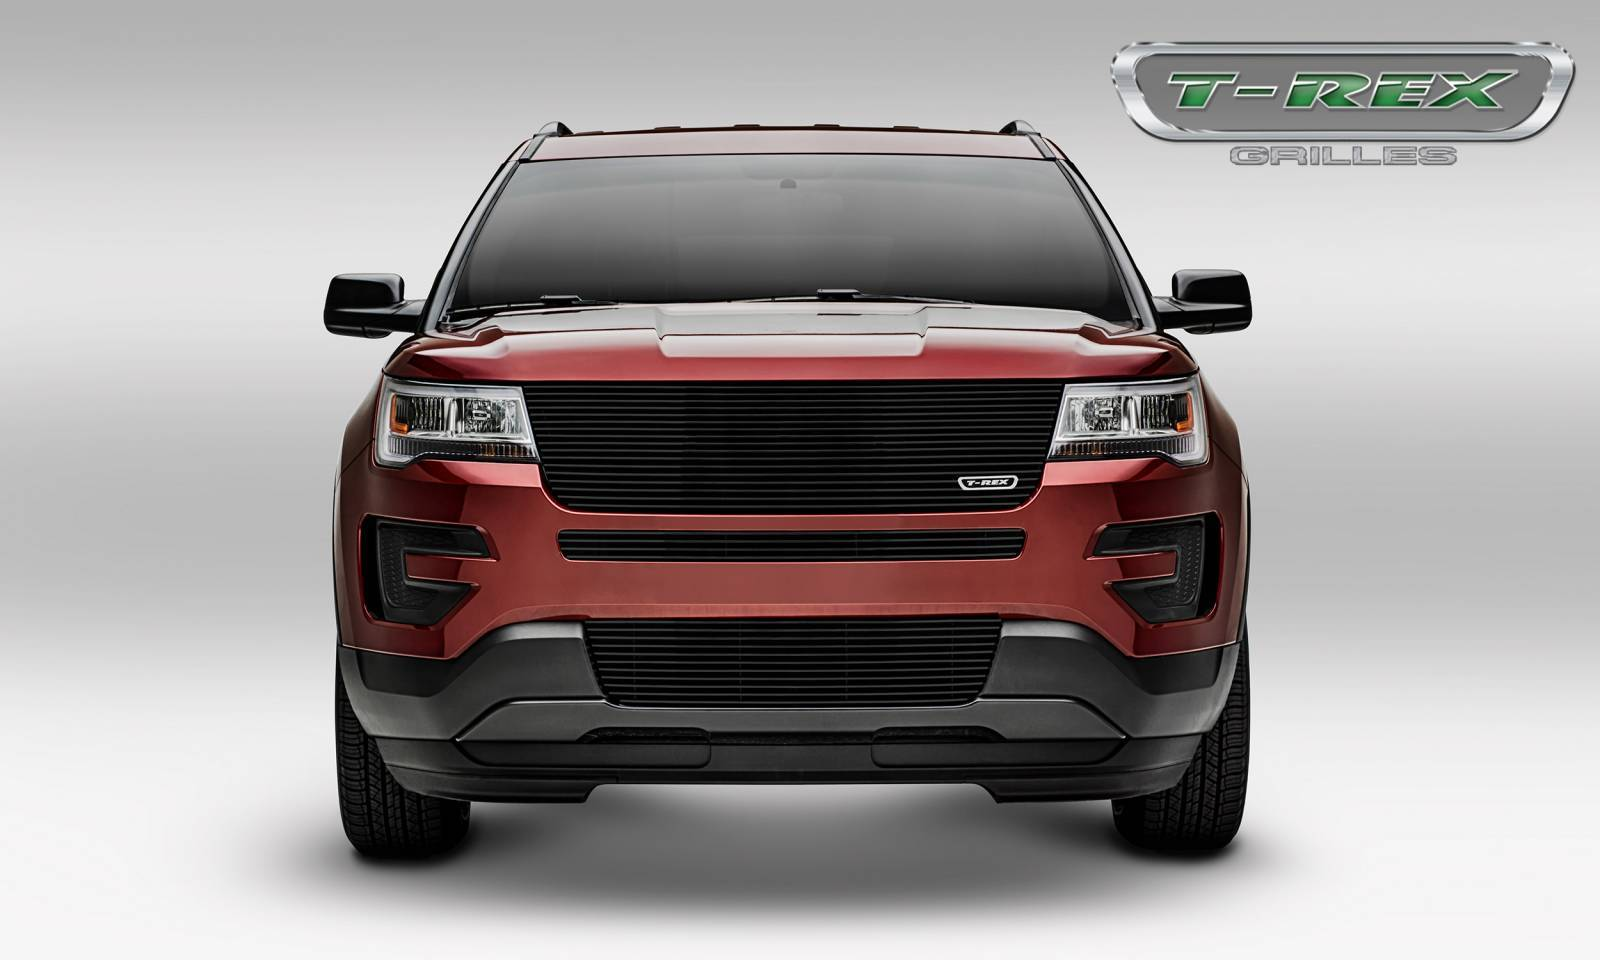 T rex ford explorer laser billet series replacement main grille w o logo recess black powder coated does not fit with forward facing camera pt 6216651